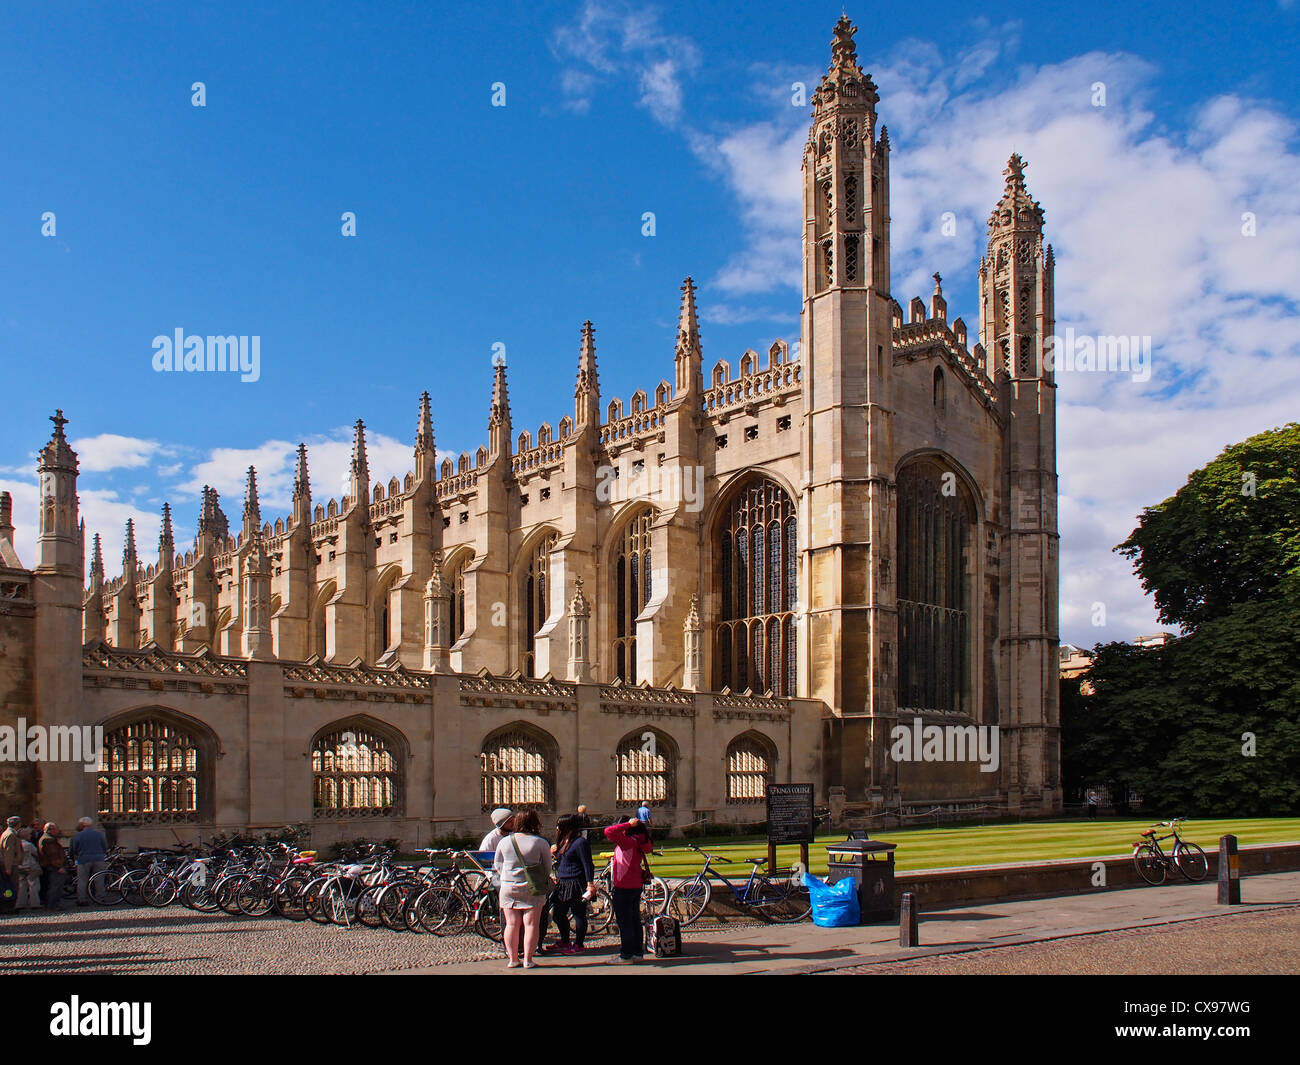 Landscape image of the front of Kings College Chapel Cambridge against blue autumn skies - Stock Image